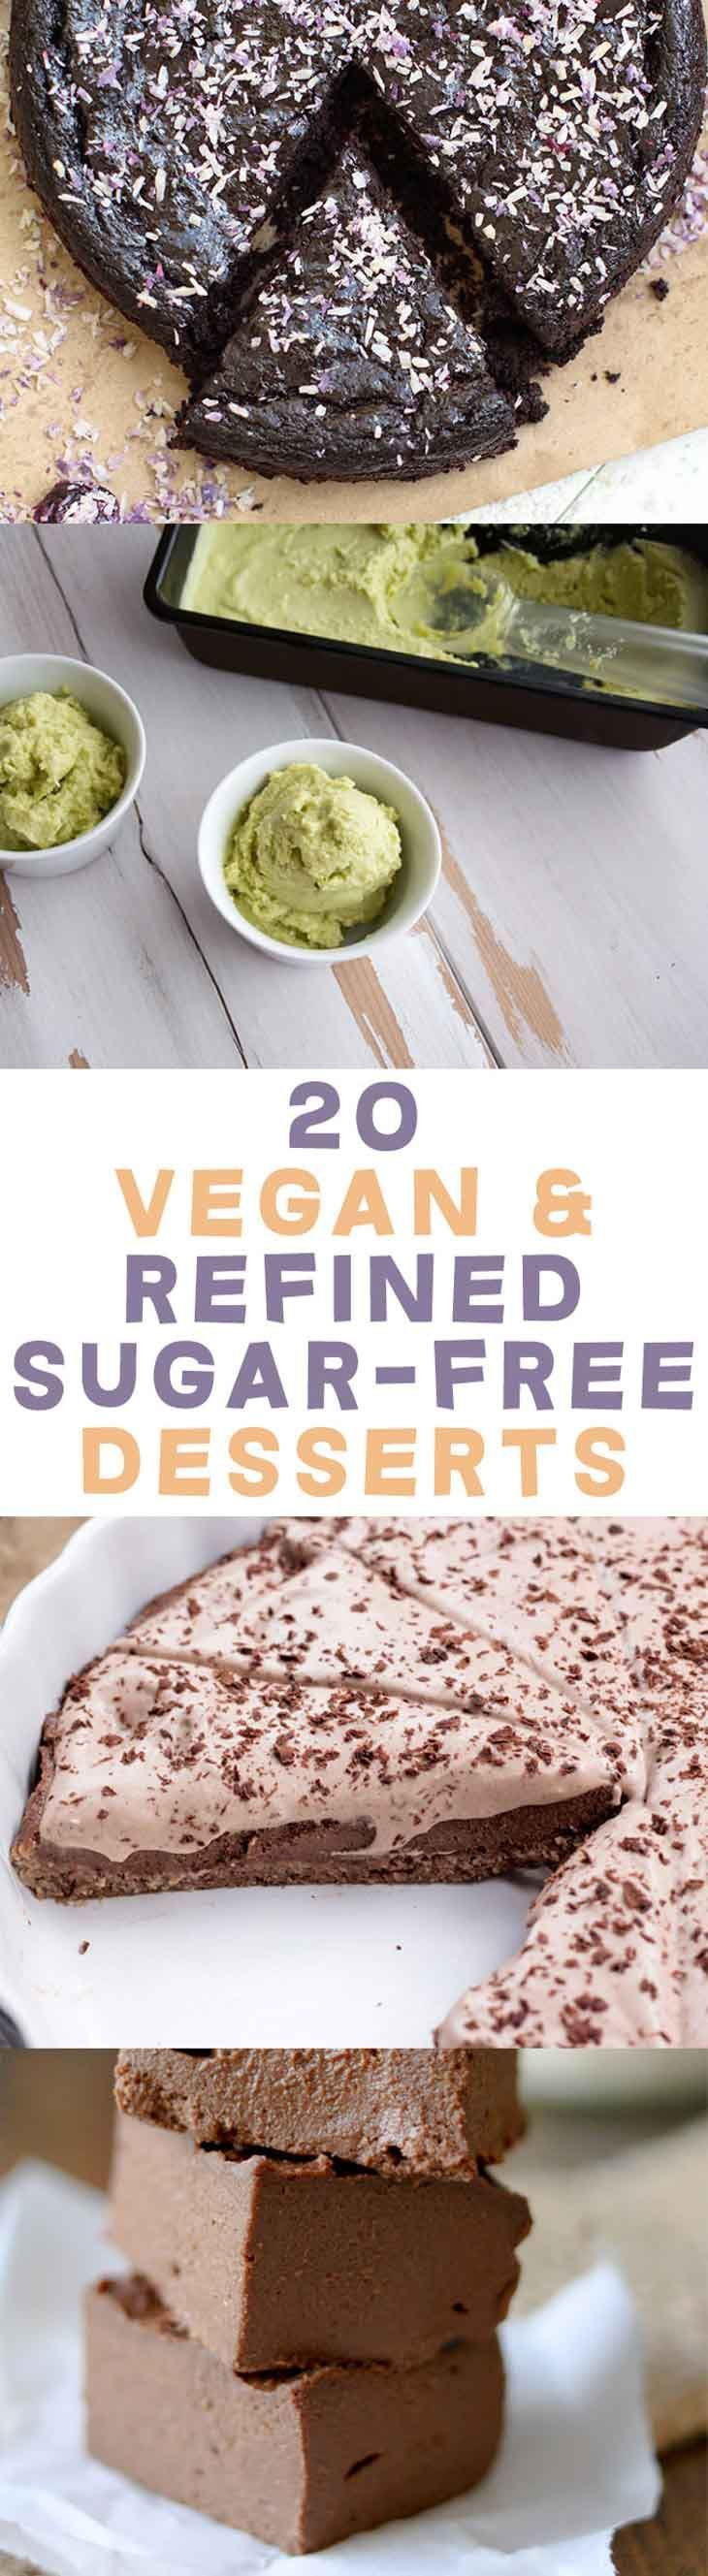 20 Vegan and Refined Sugar-Free Desserts | Ditch the white sugar! | ElephantasticVegan.com